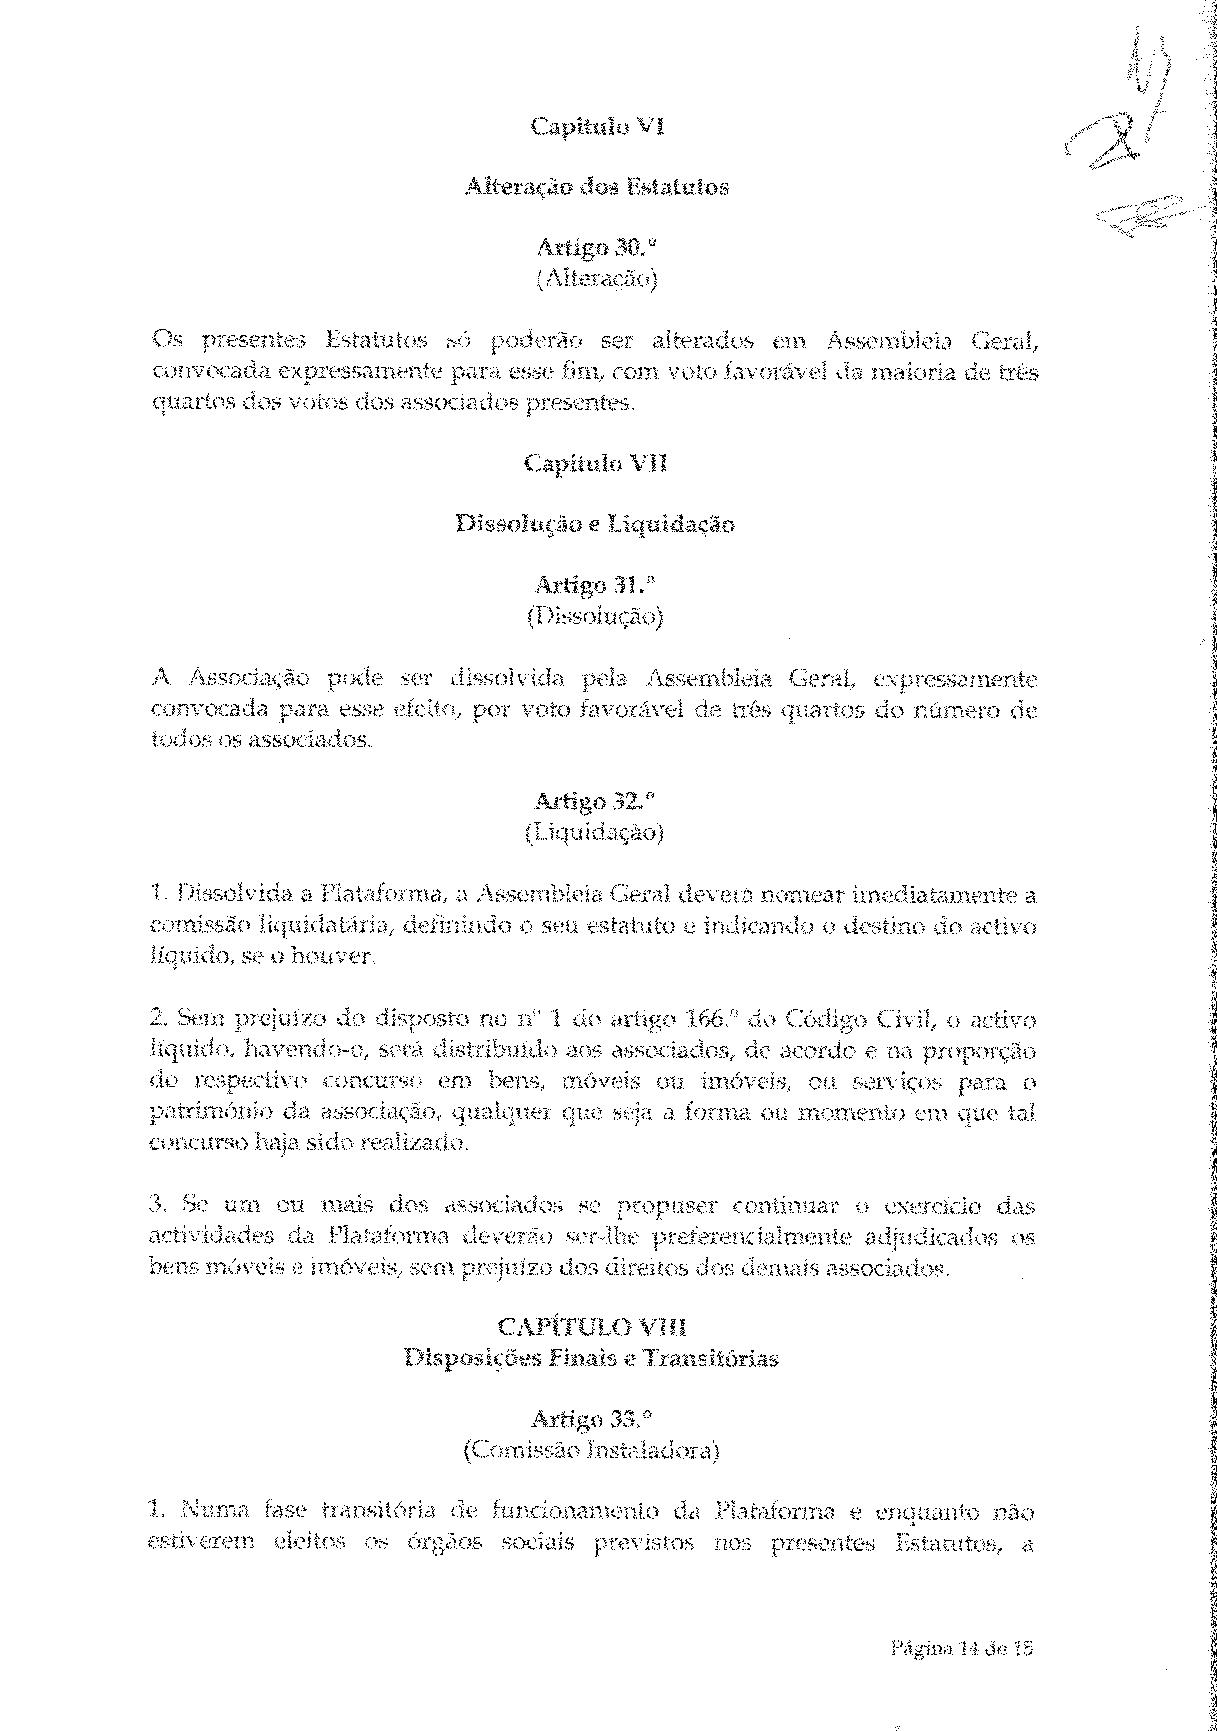 509402267_Associacao_BLC_rectificacao (5)-page-020